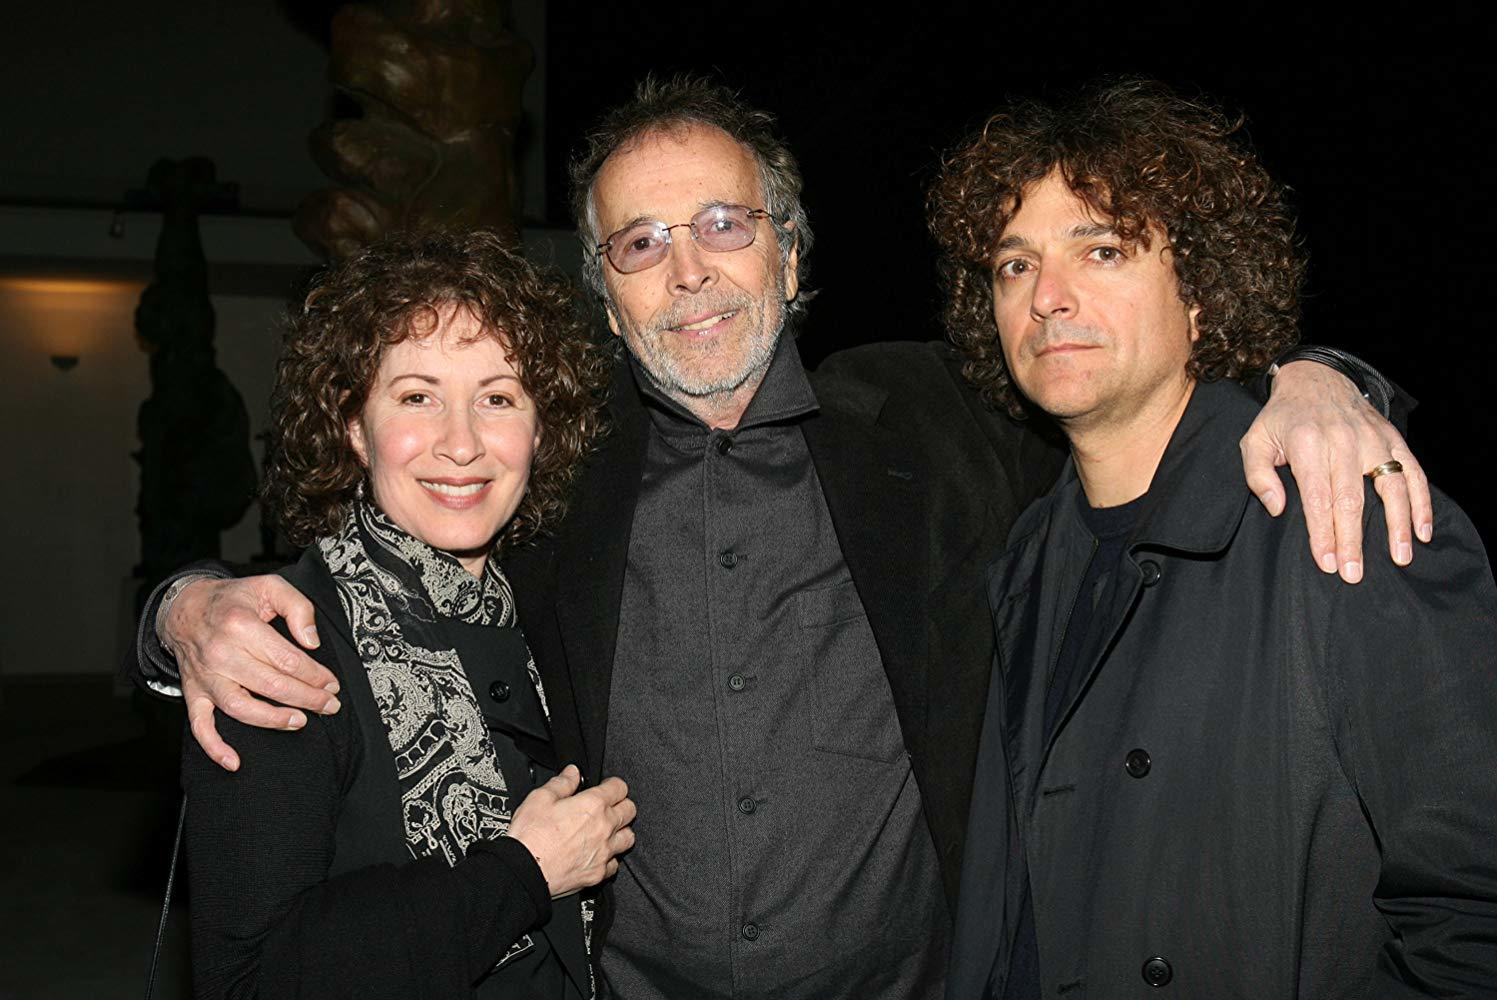 Lani Hall Alpert, Herb Alpert and Anthony Marinelli (Photo: M. Phillips/WireImage for The Pasadena Museum of California Art) PMCA Presents 'Spirit Totems' Exhibit by Herb Alpert, Pasadena, CA, 2005